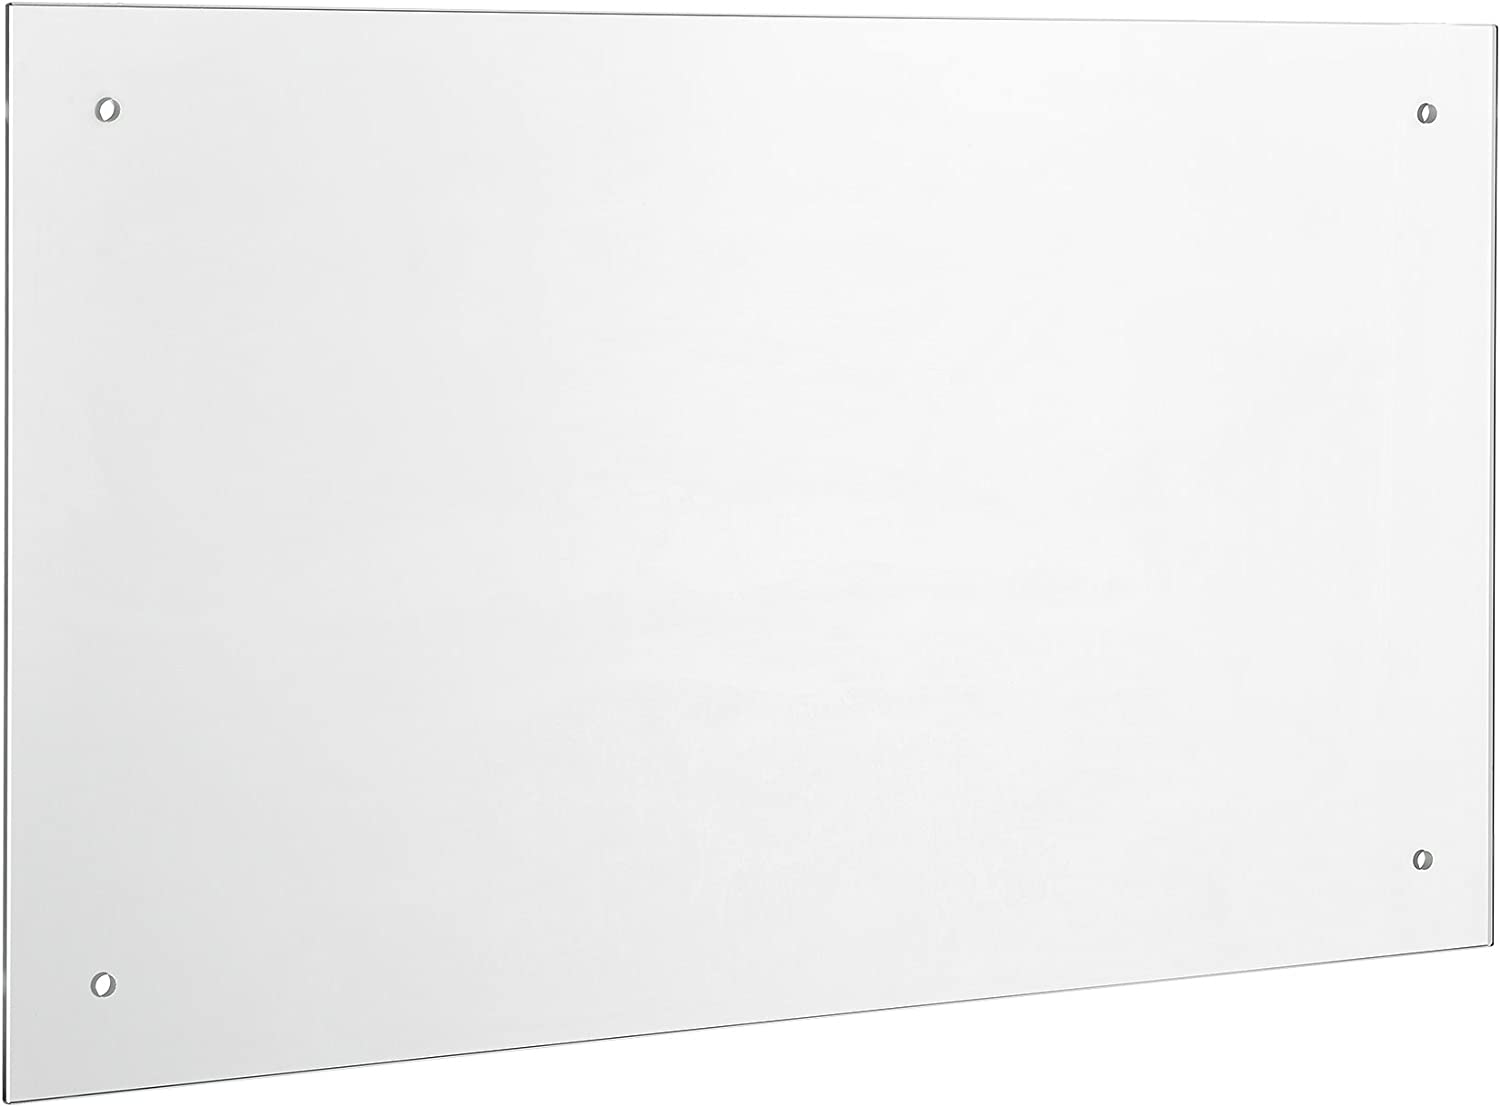 kitchen rear panel - wall - splashback - safety glass - clear - transparent - splash guard - 70 x 40 cm